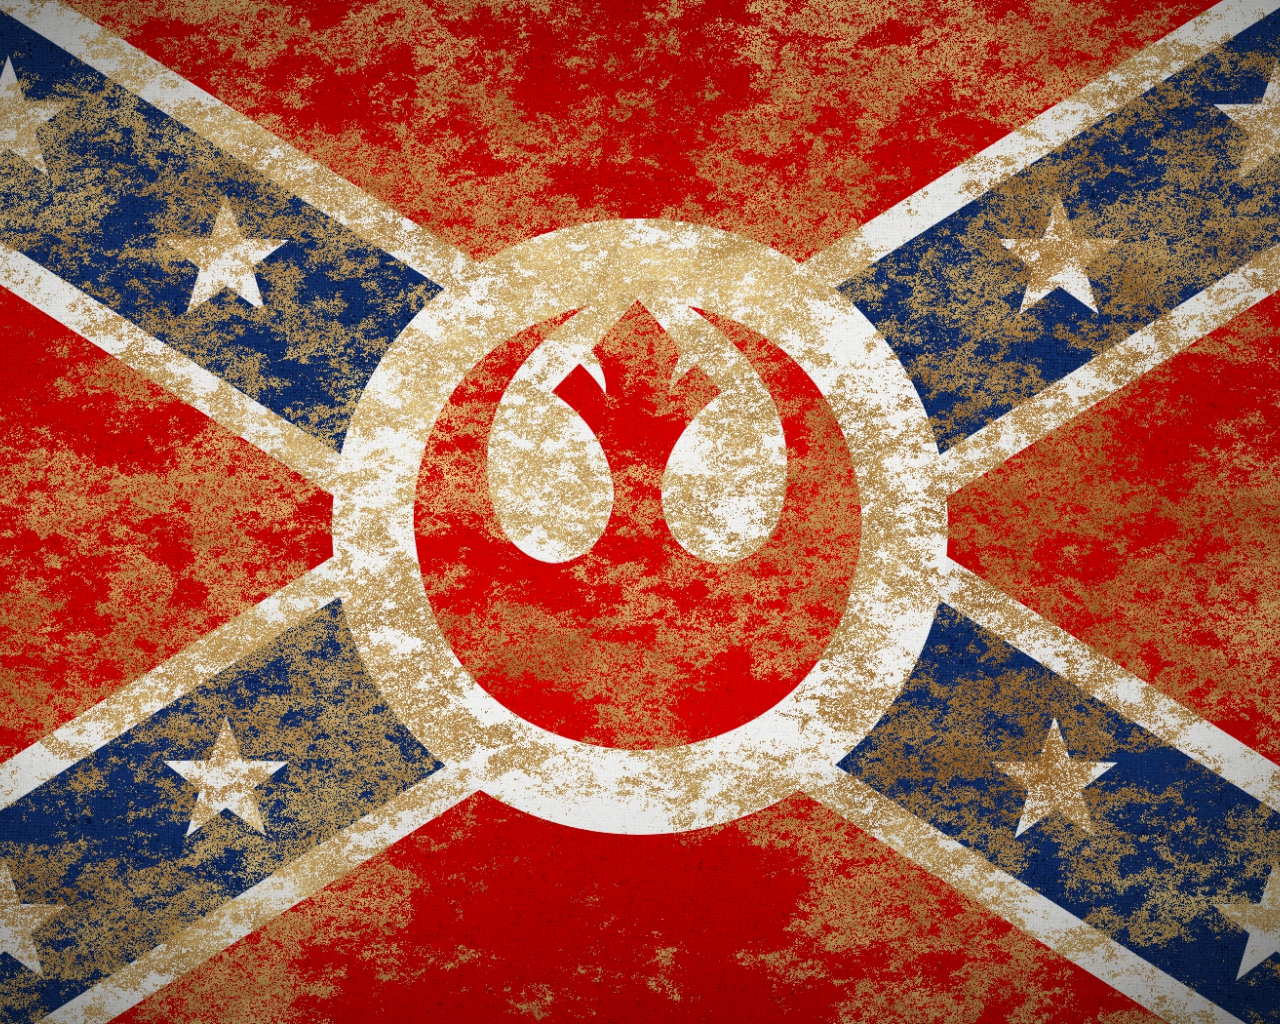 Wallpaper rebel confederate flag